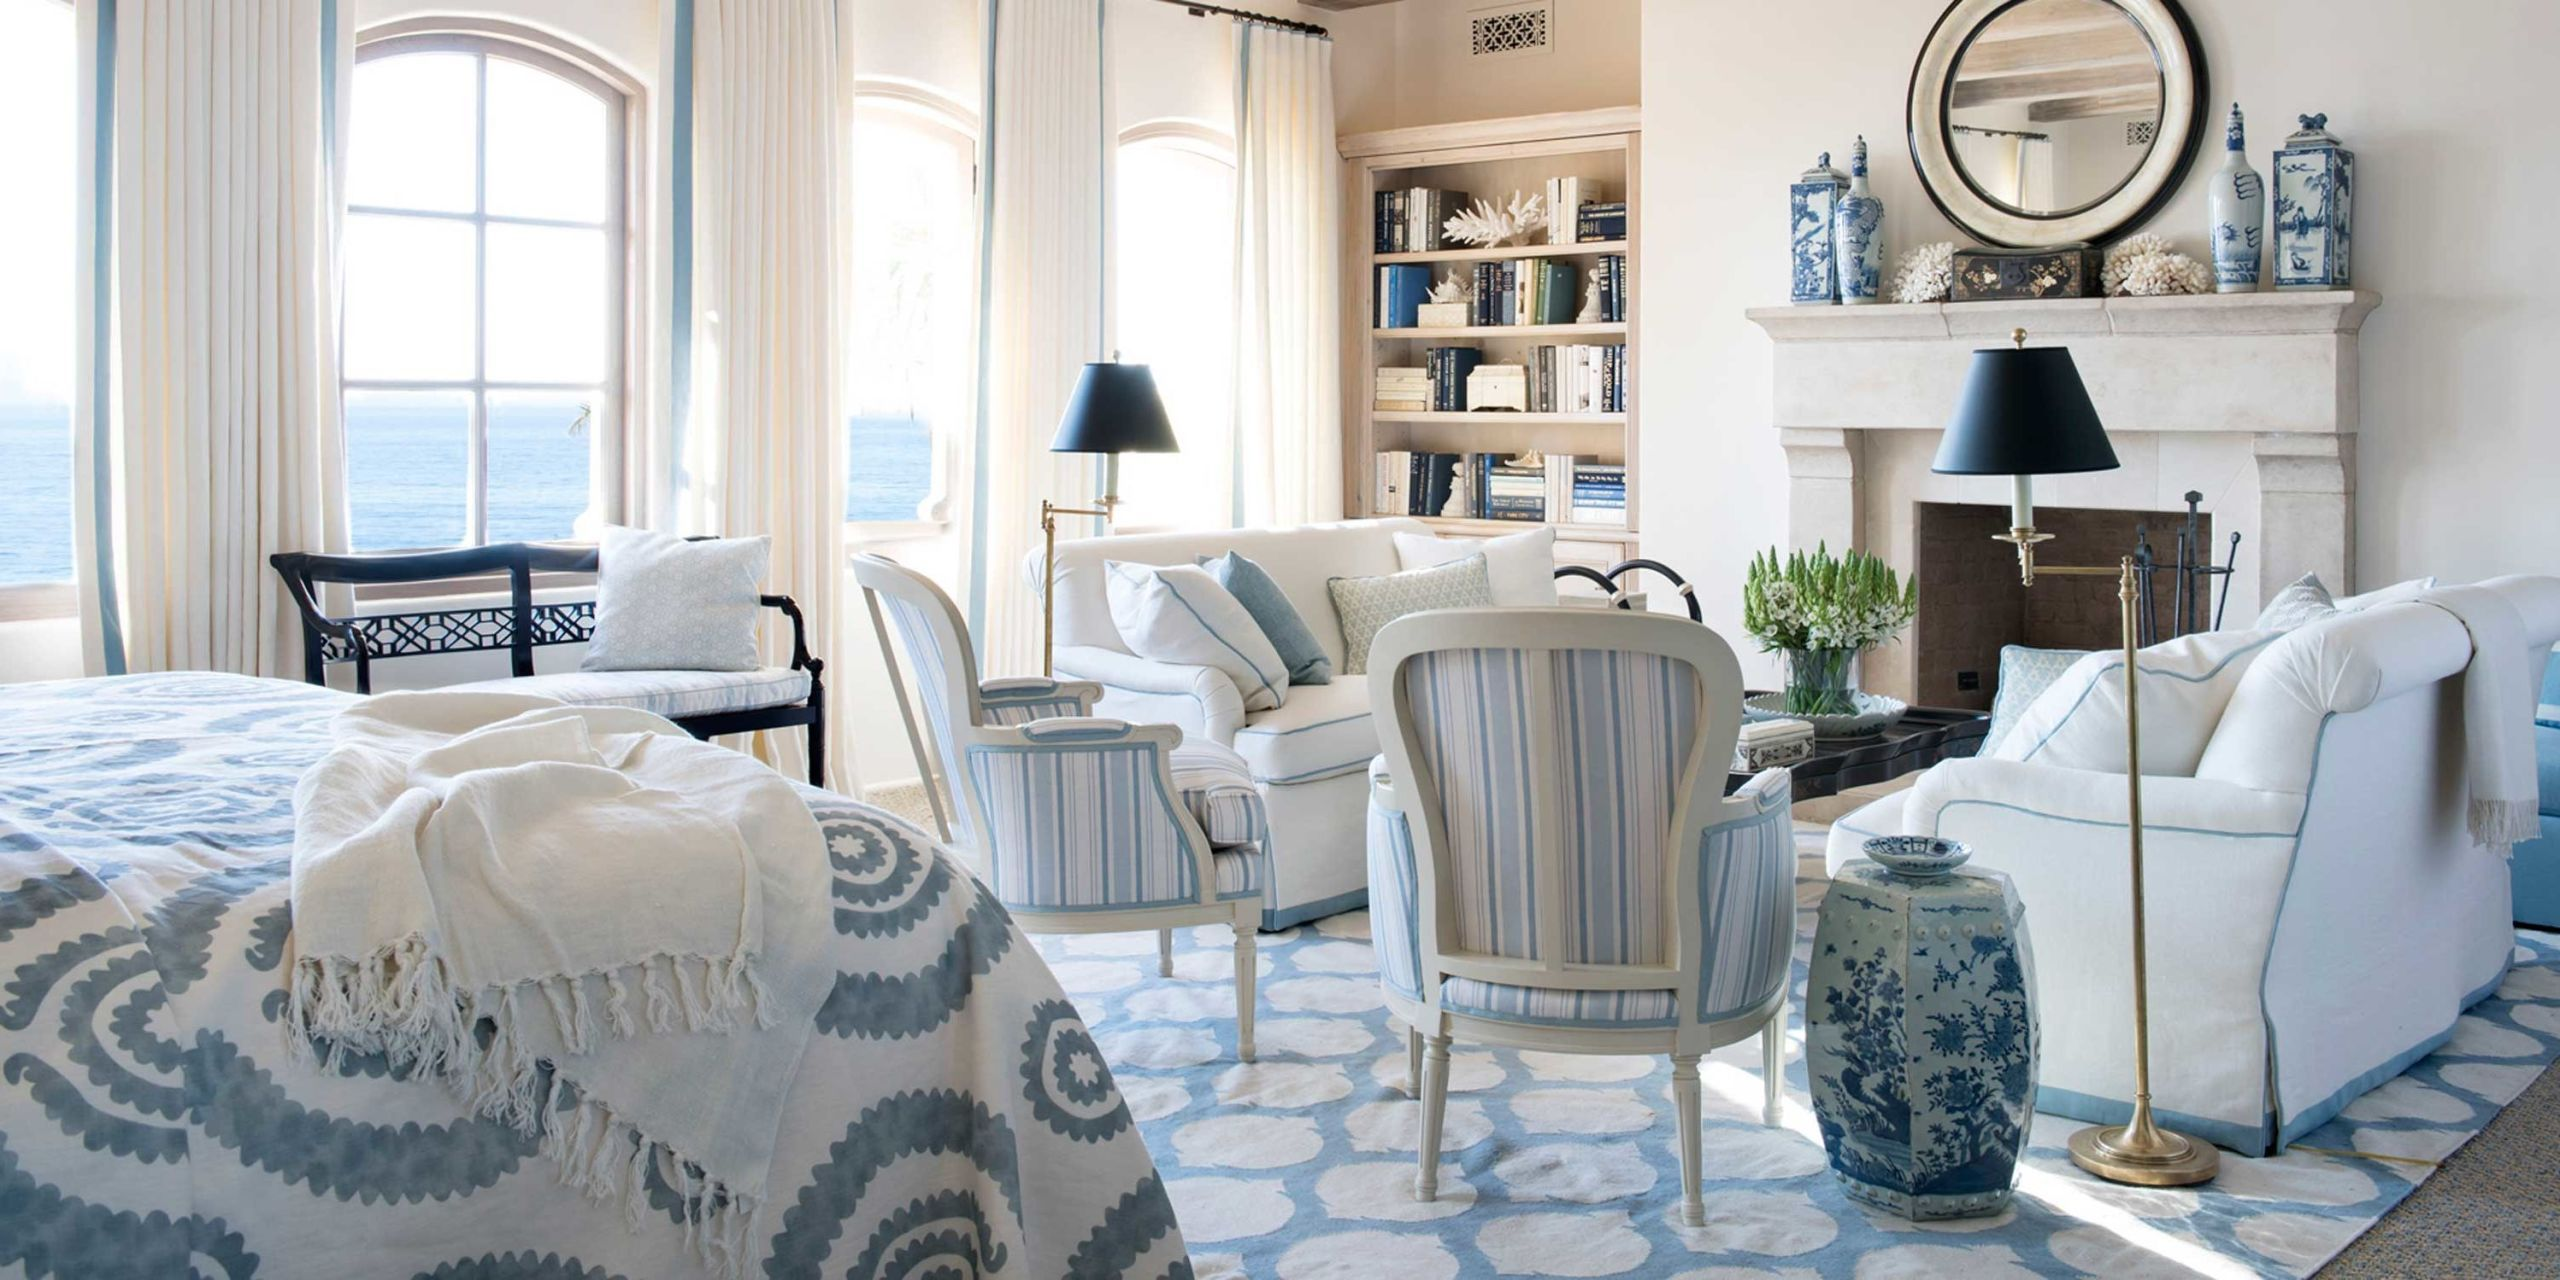 Merveilleux The Classic Combination Of True Blue With Bright White Is Still A Timeless  Country Paletteu2014here Are A Few Of Our Favorite Rooms That Wear The Colors  Well.